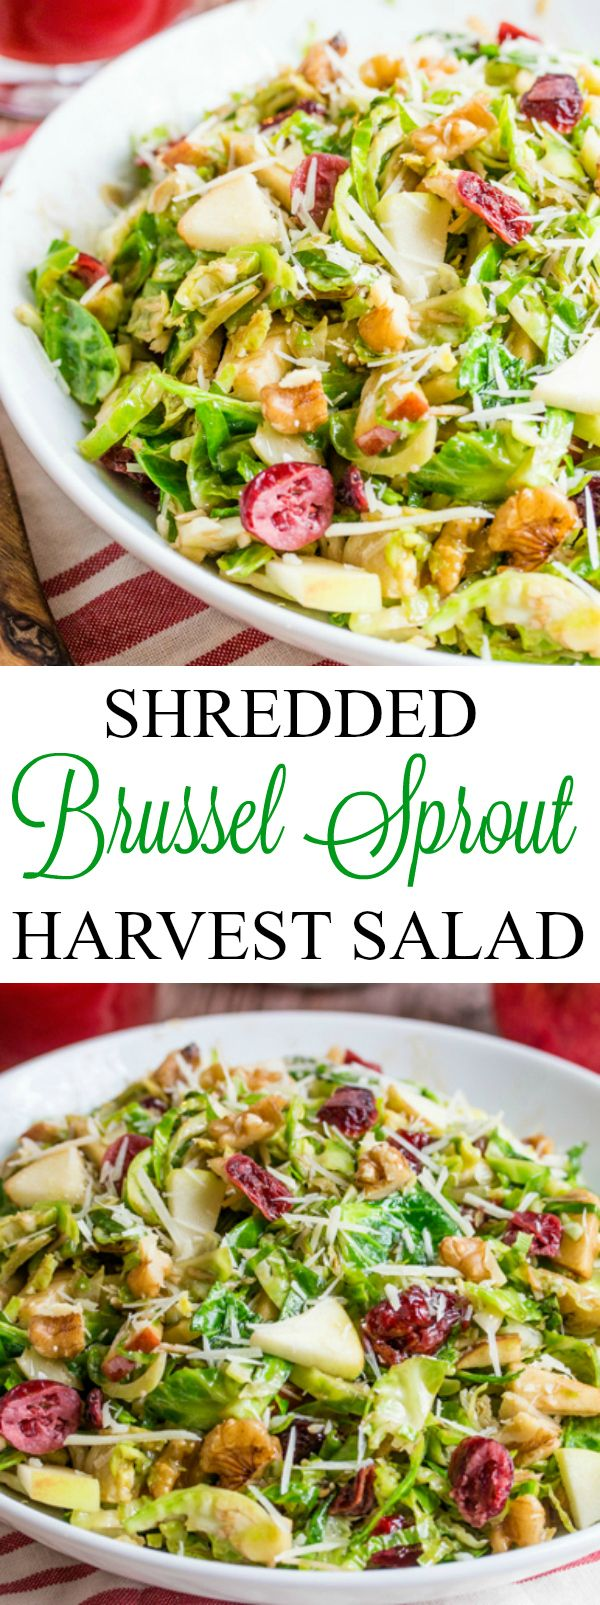 This Shredded Brussel Sprout Harvest salad is full of apples, cranberries, walnuts and parmesan and drizzled with a sweet and tangy maple balsamic dressing. #Prep4Gathering #ad